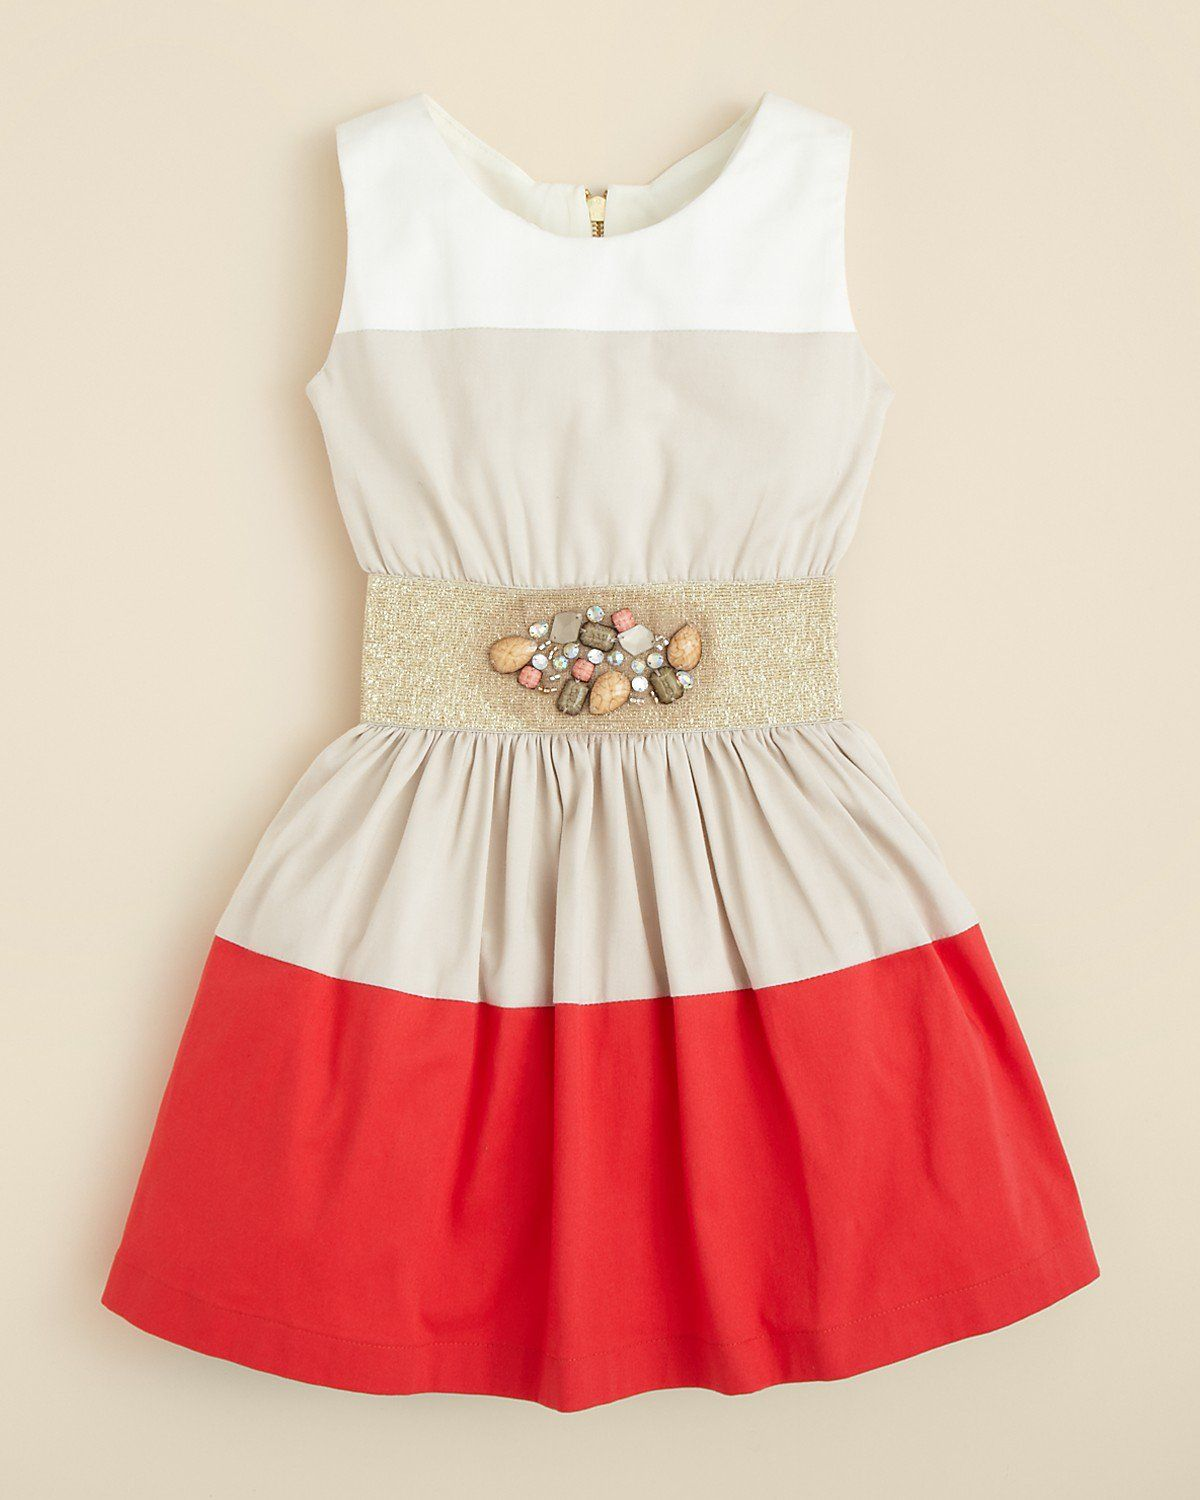 1000  images about grad dresses on Pinterest - Kids clothing ...